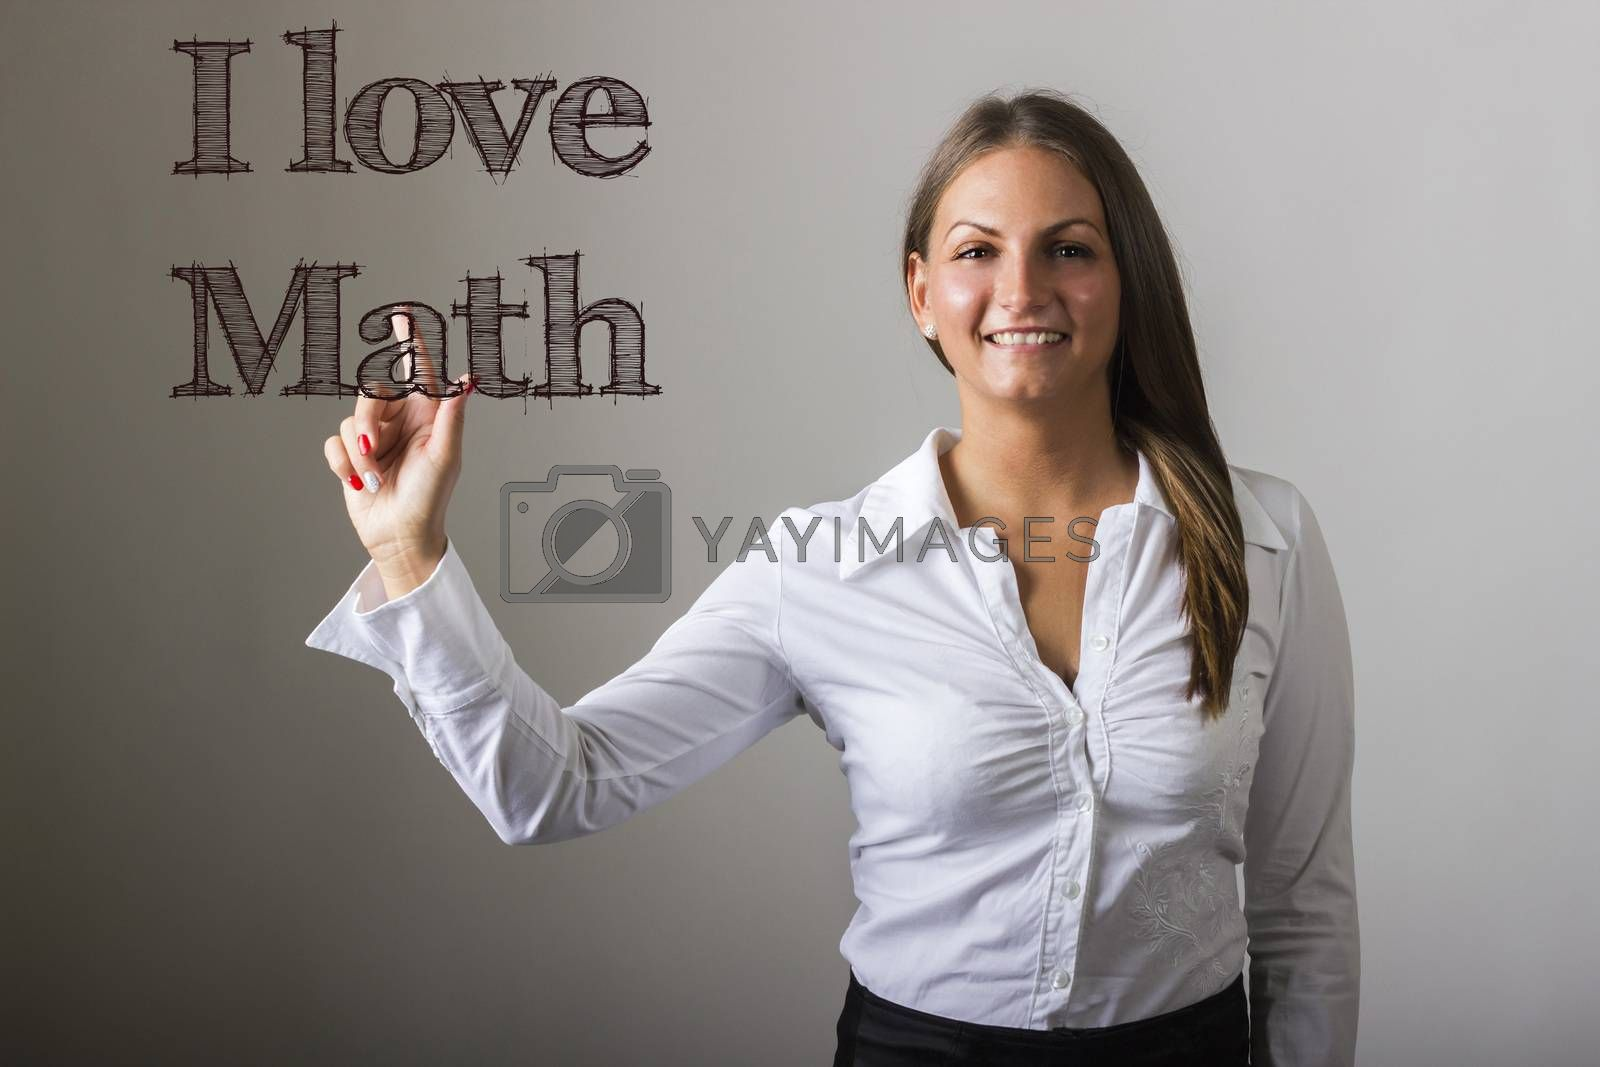 I love Math - Beautiful girl touching text on transparent surface - horizontal image